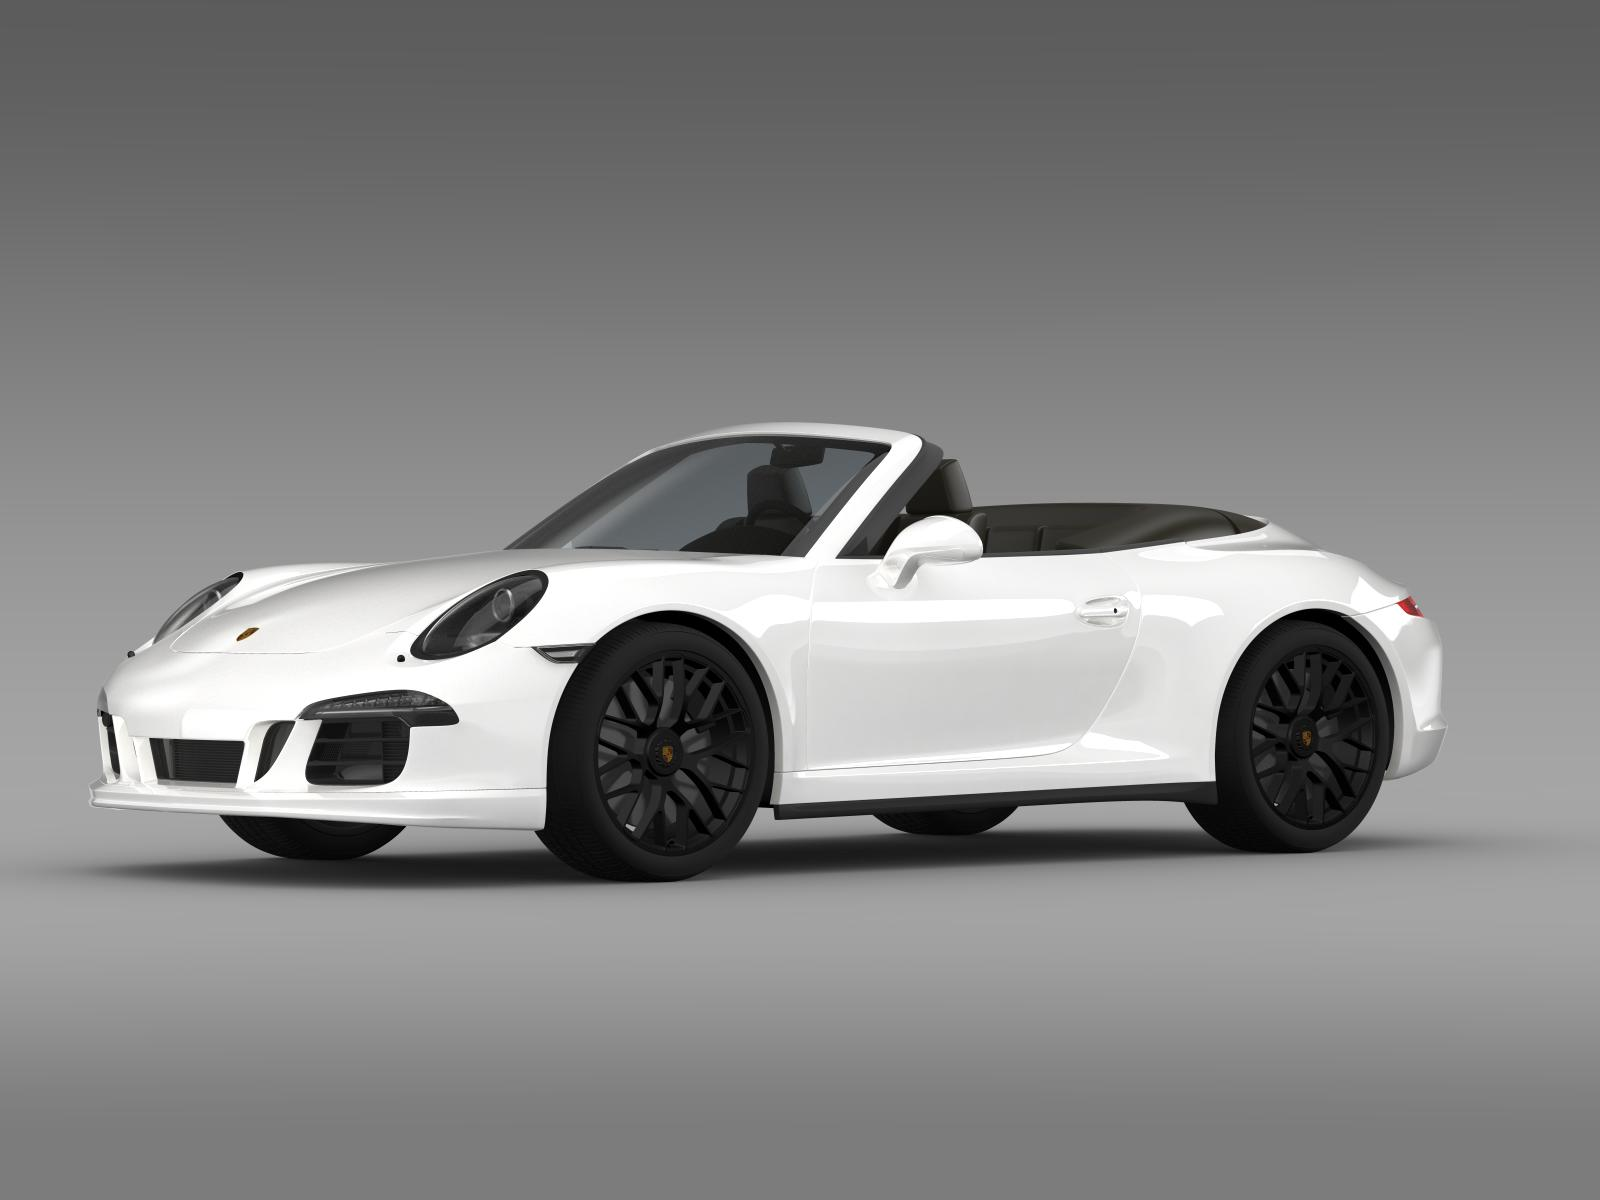 porsche 911 carrera 4 gts cabriolet 991 2015 3d model. Black Bedroom Furniture Sets. Home Design Ideas